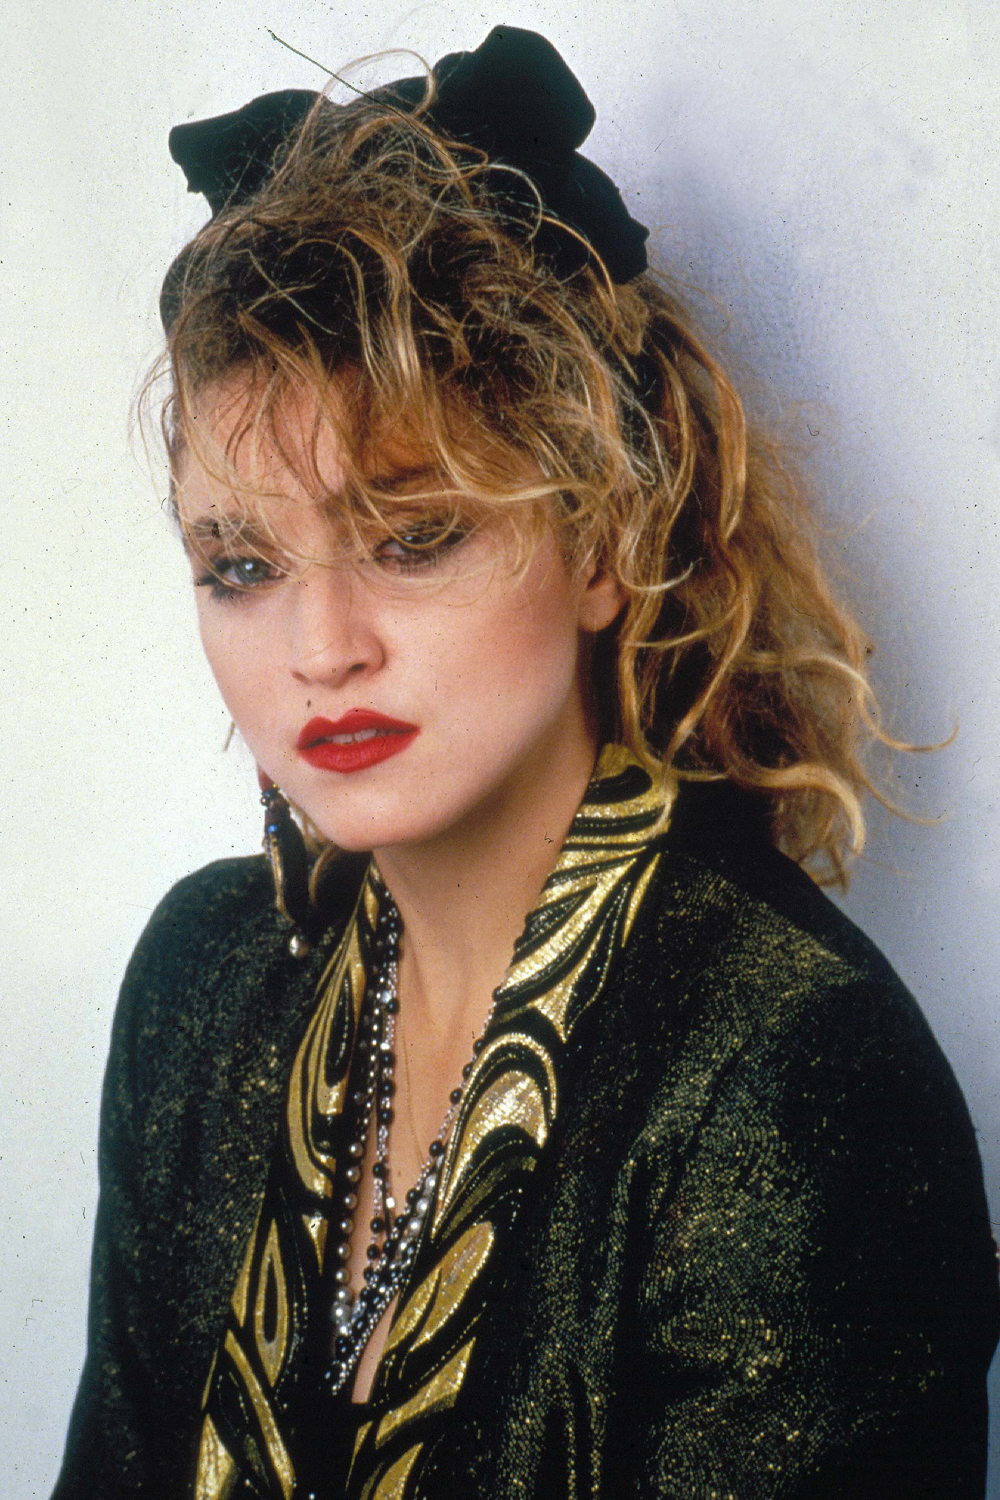 10 Icons That Defined The 80s Fashion The Decade With All The Style Statements Vintage Everyday